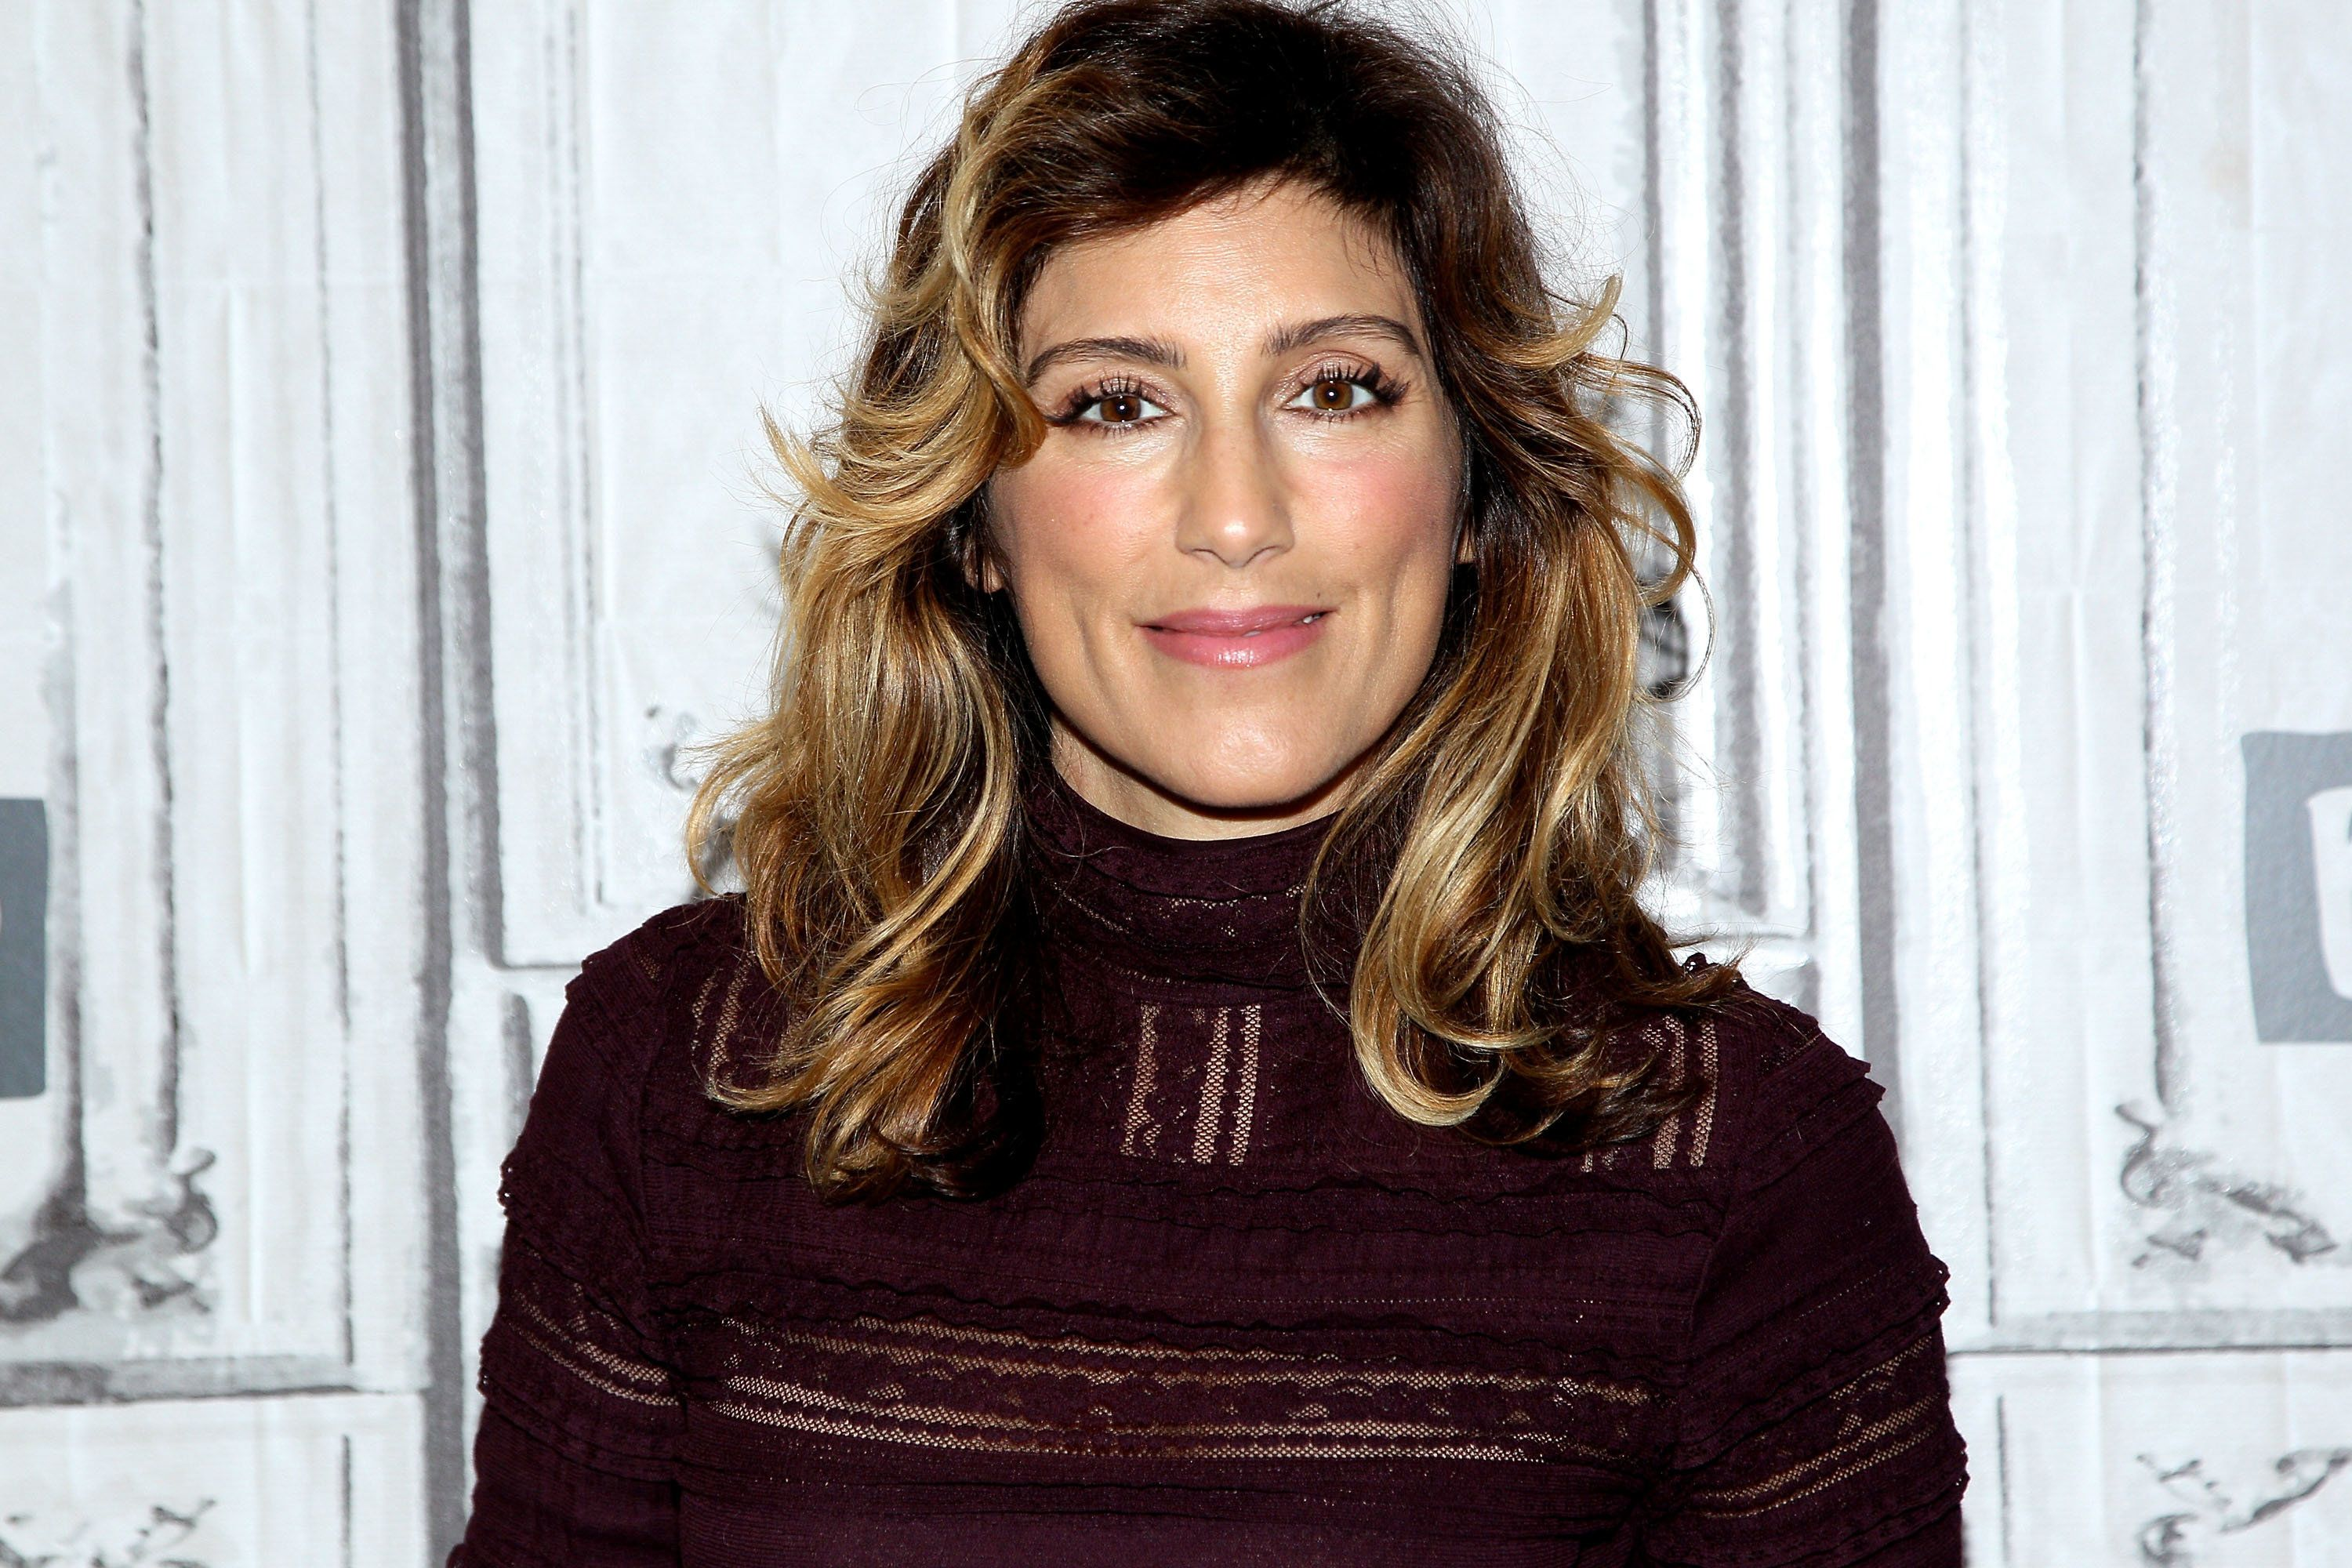 NEW YORK, NY - SEPTEMBER 28:  Build presents Jennifer Esposito discussing 'Jennifer's Way Kitchen' at Build Studio on September 28, 2017 in New York City.  (Photo by Steve Mack/FilmMagic)